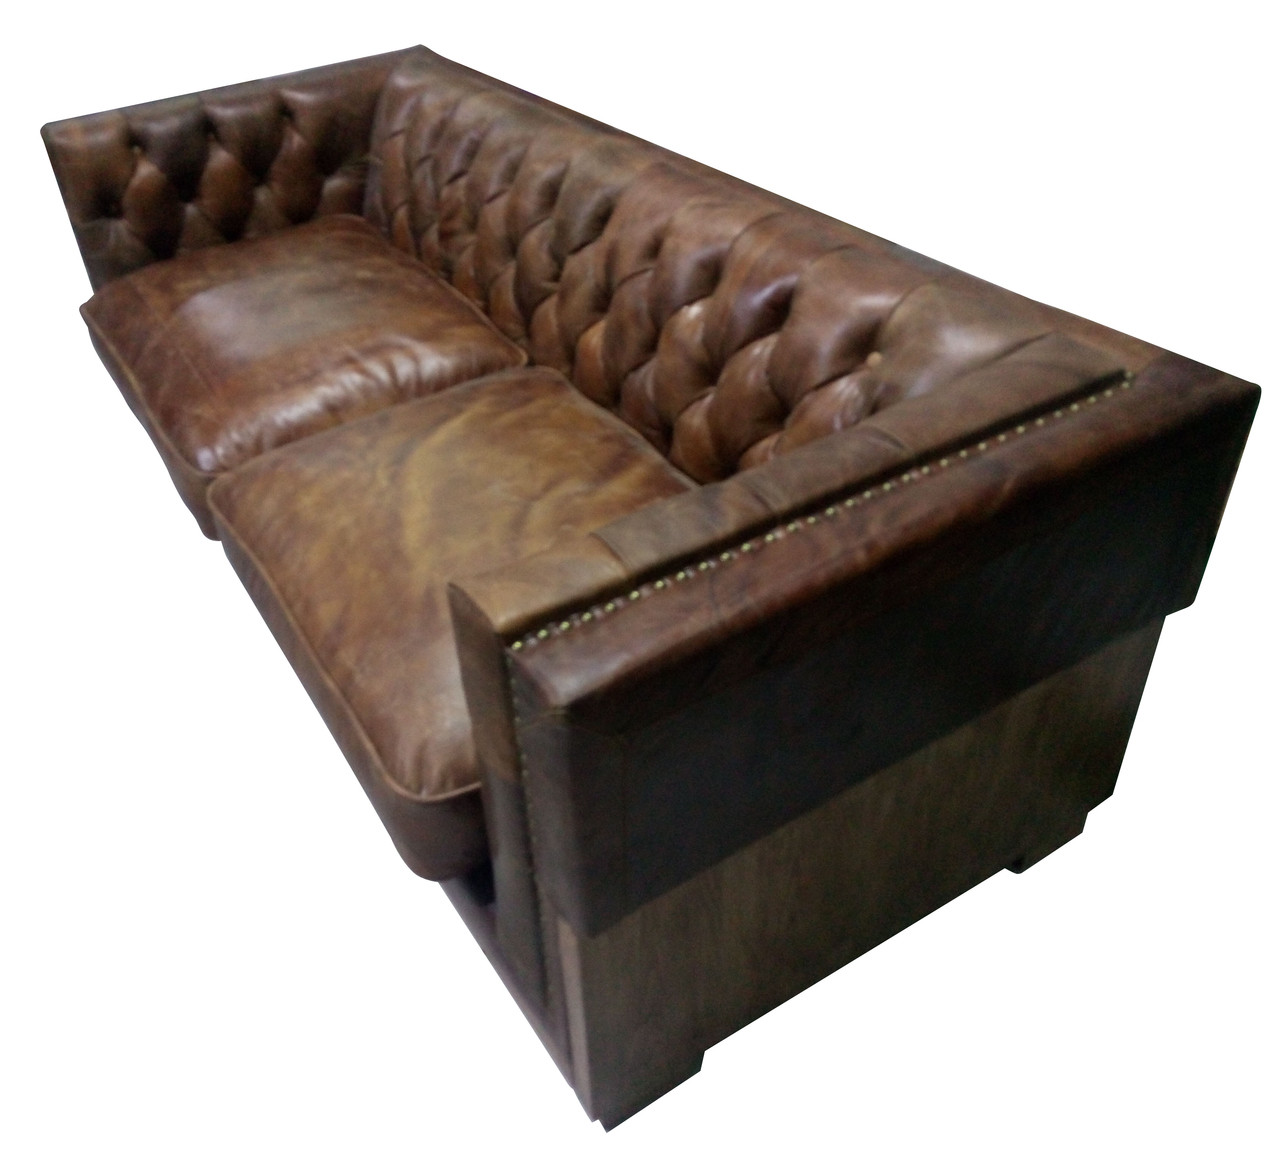 Georgetown Leather Rustic WoodSofa